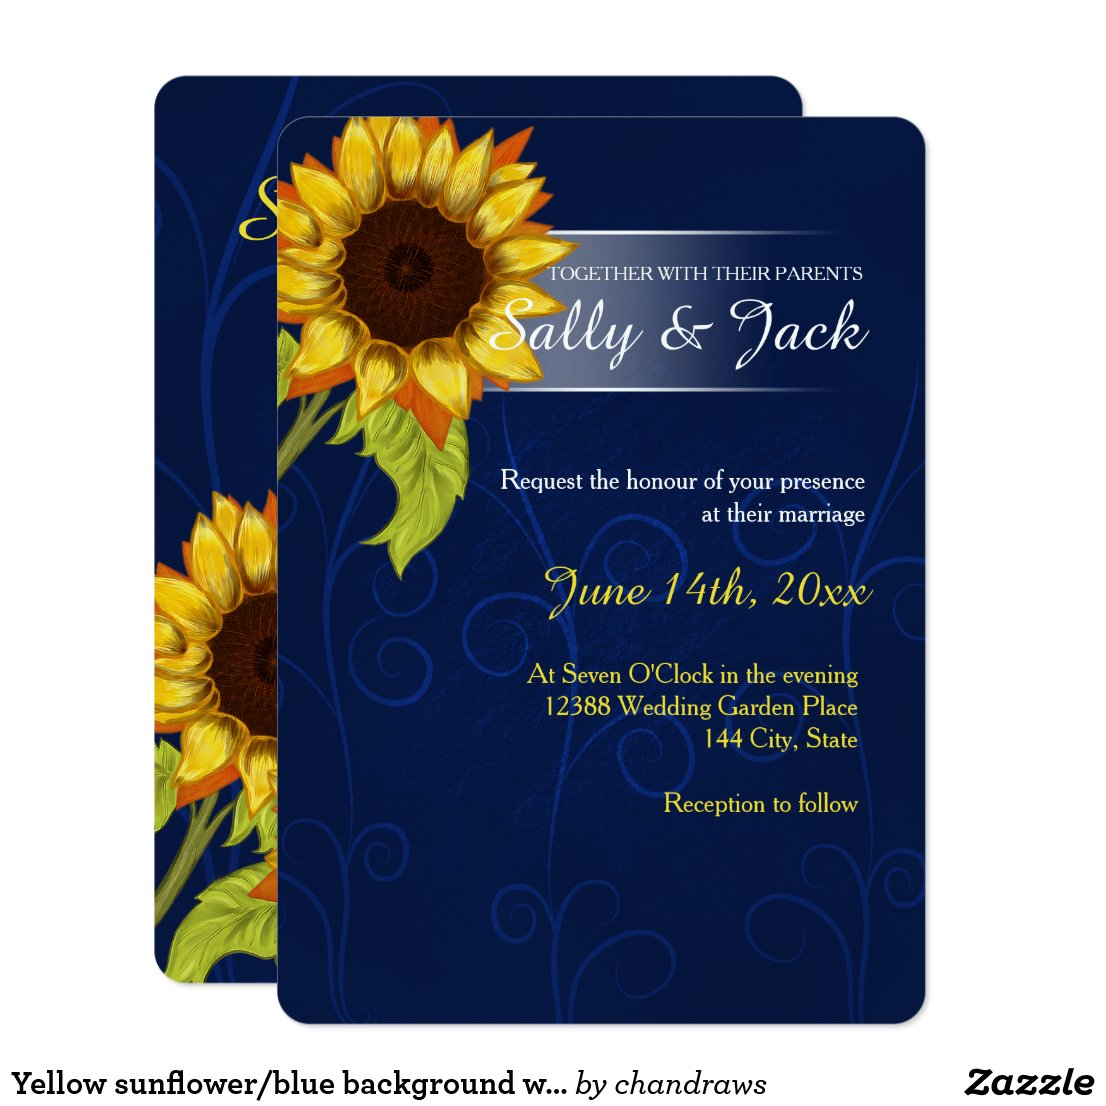 Yellow sunflower/blue background wedding card